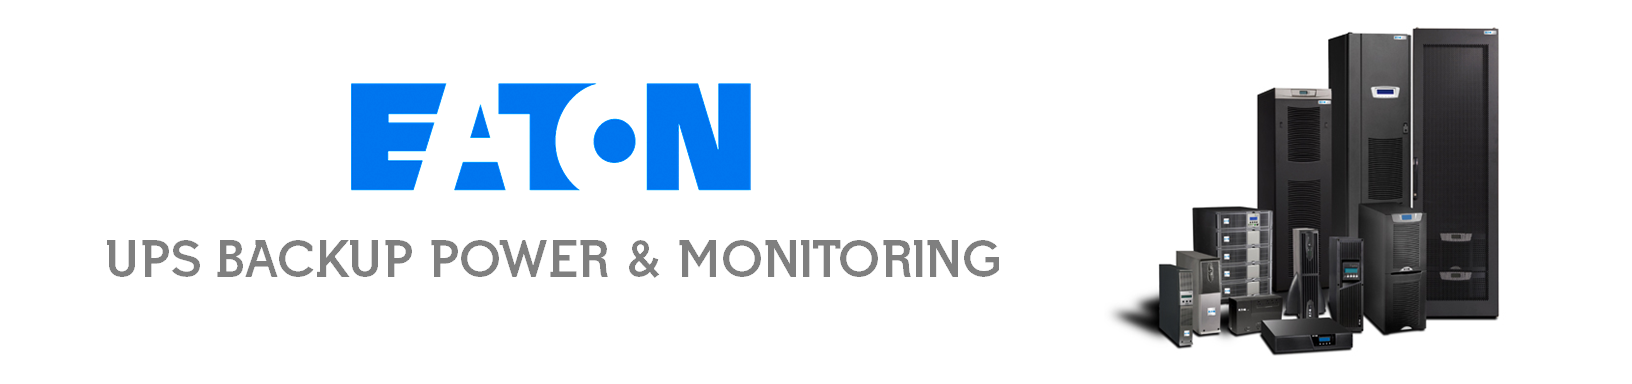 Eaton Product Banner